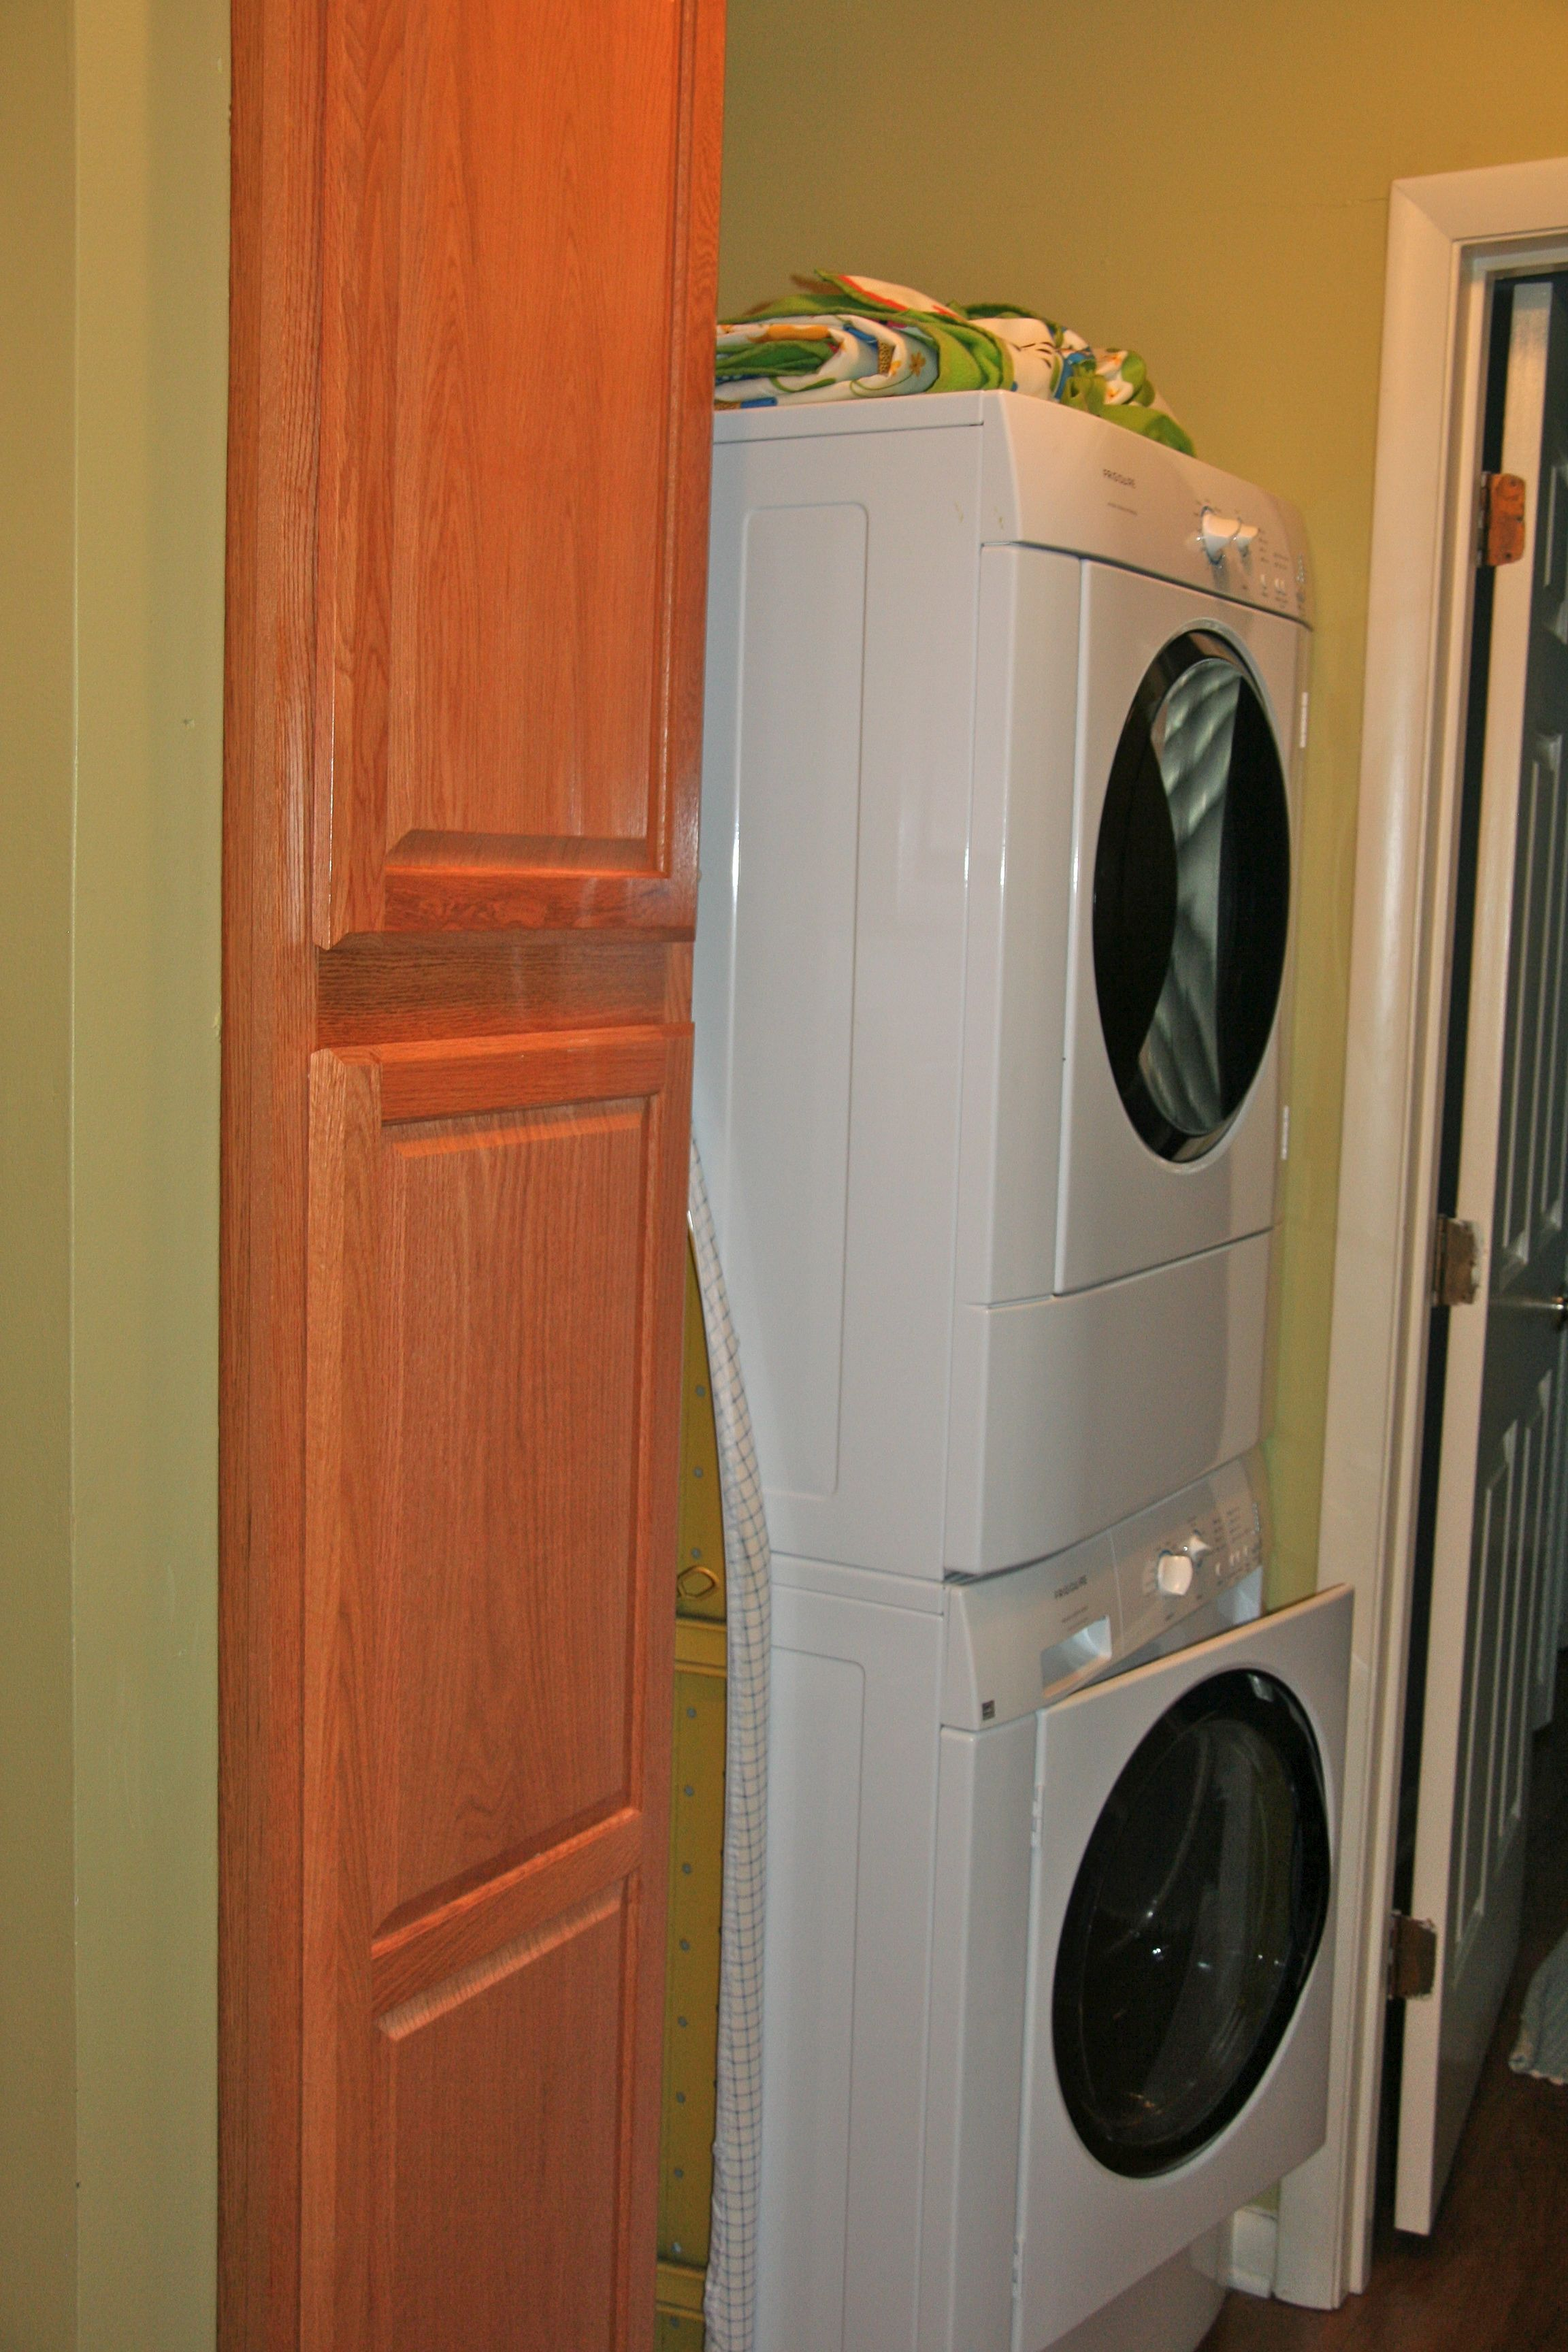 The home has a stacked washer (HE) and dryer.